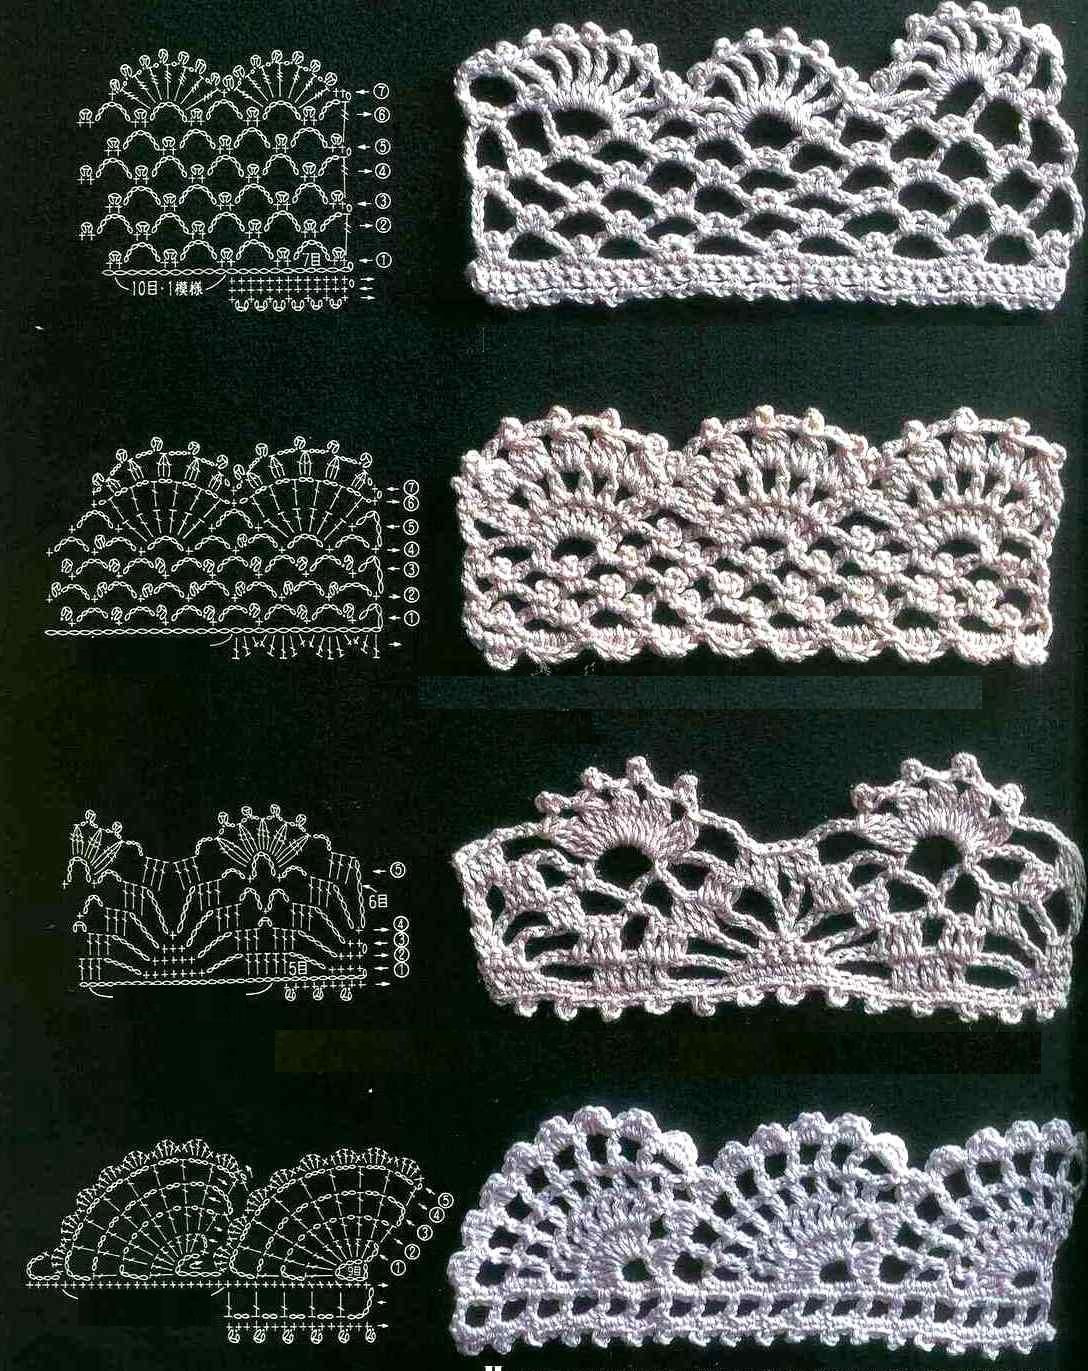 Crochet Edging Awesome Best 25 Crochet Edgings Ideas On Pinterest Of Beautiful 50 Pictures Crochet Edging